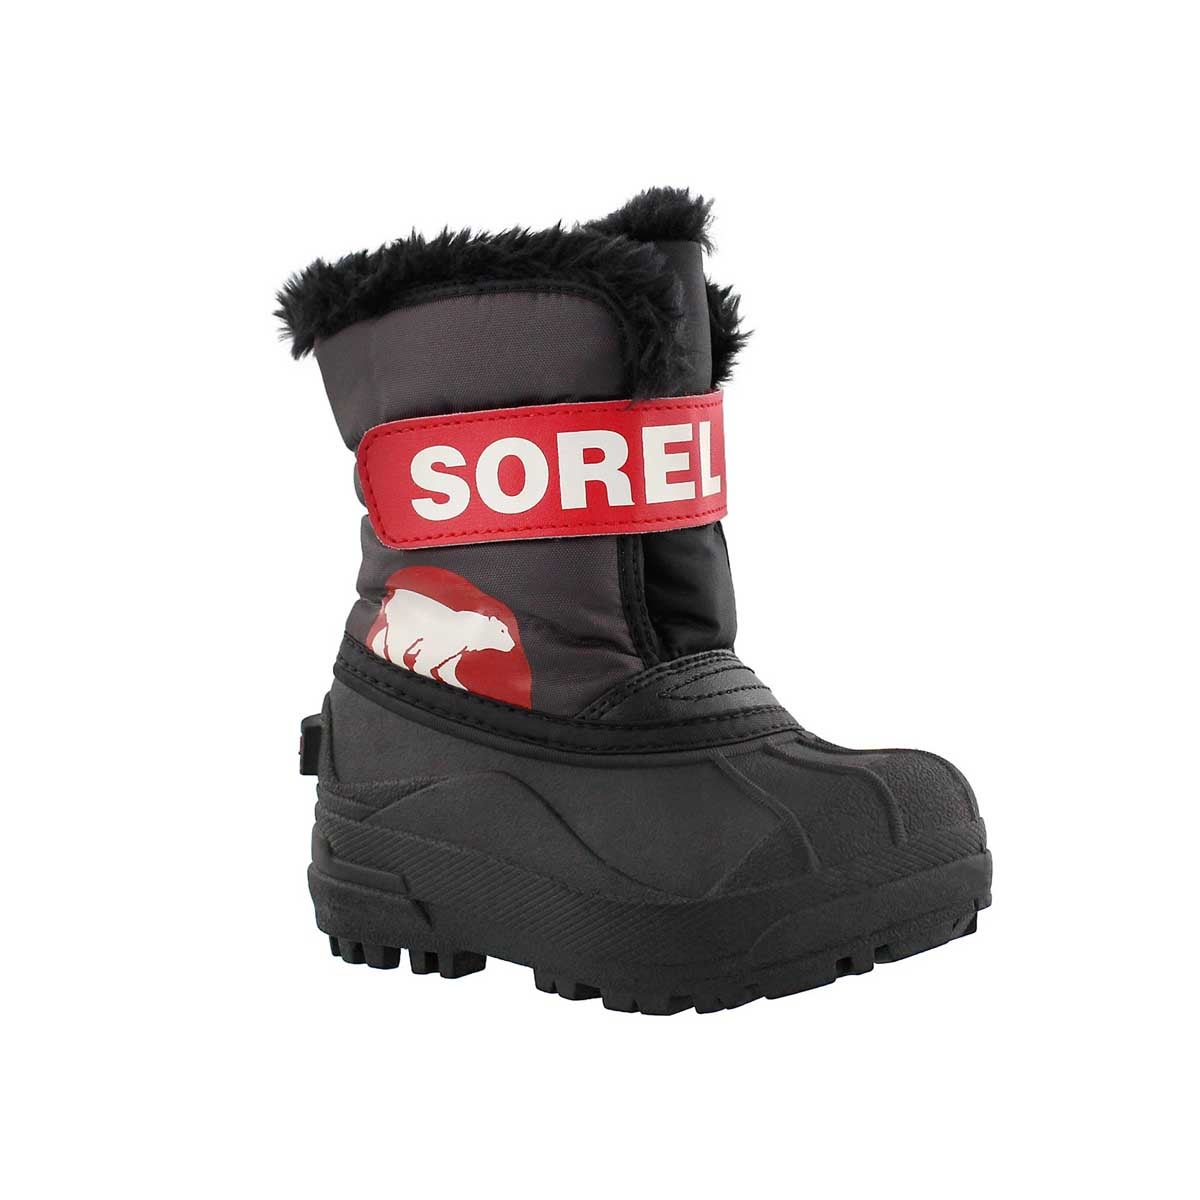 Inf Snow Commander dk gry/red boot